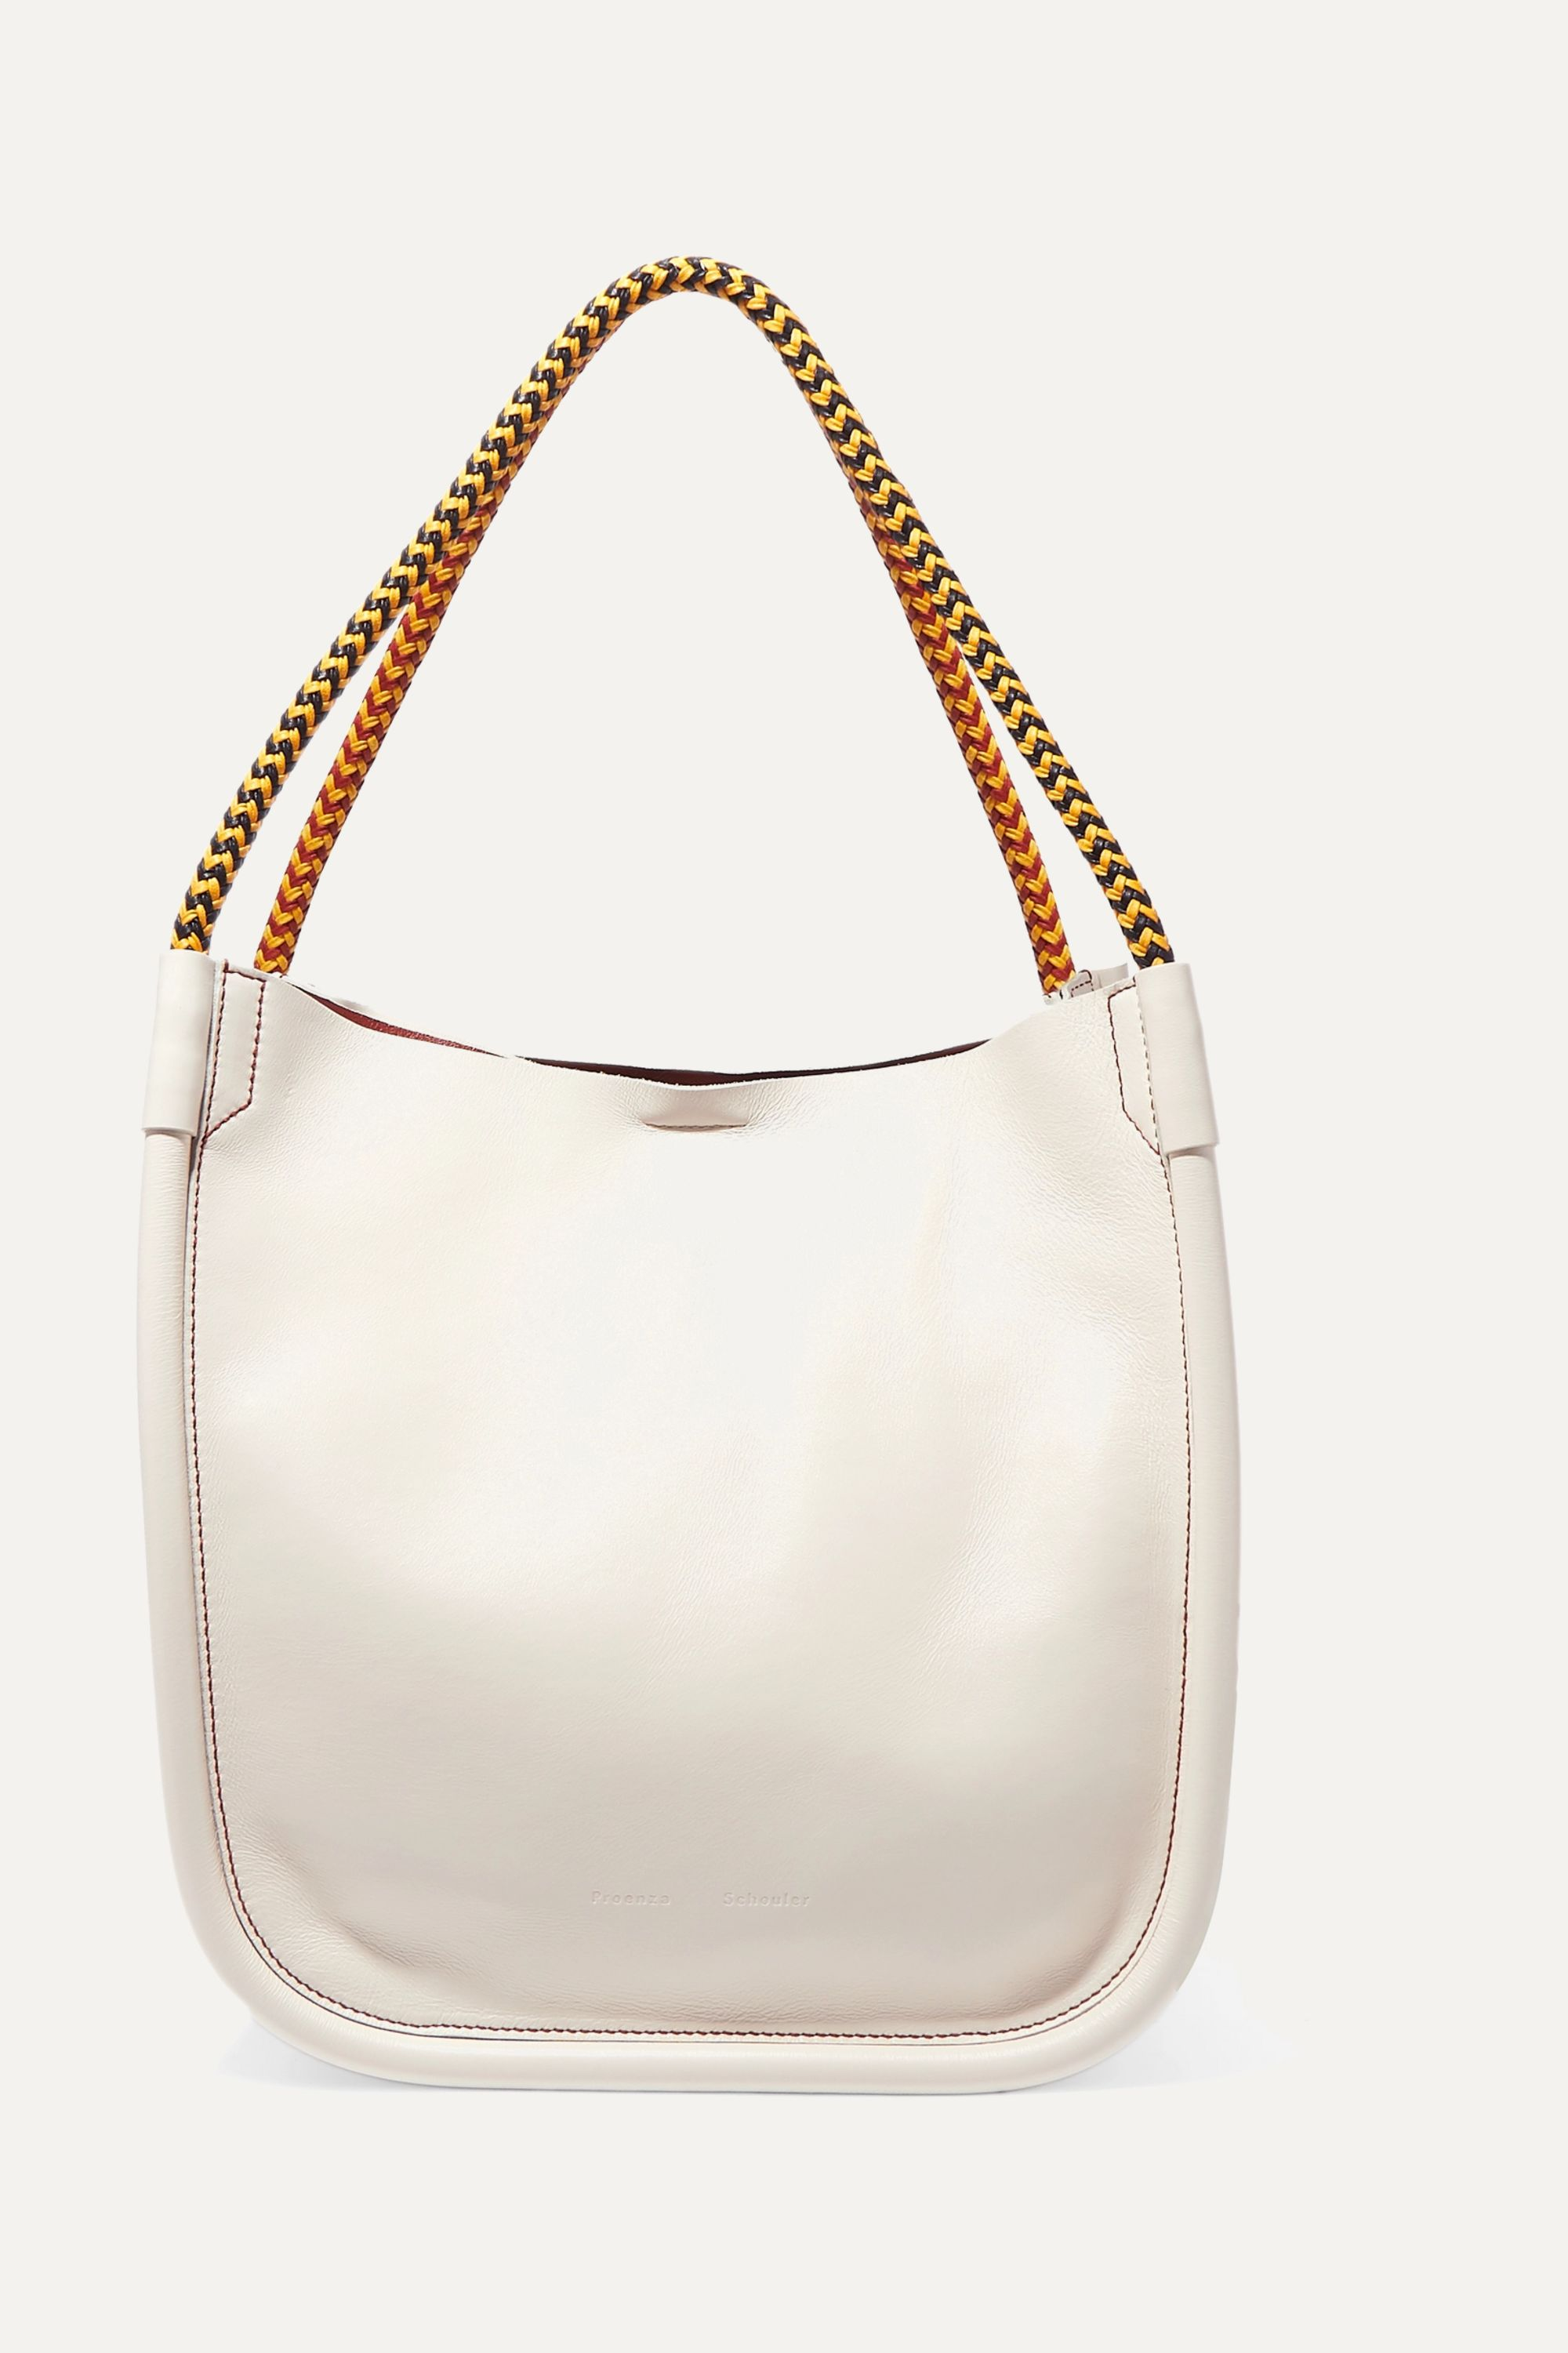 Proenza Schouler Lux large leather tote